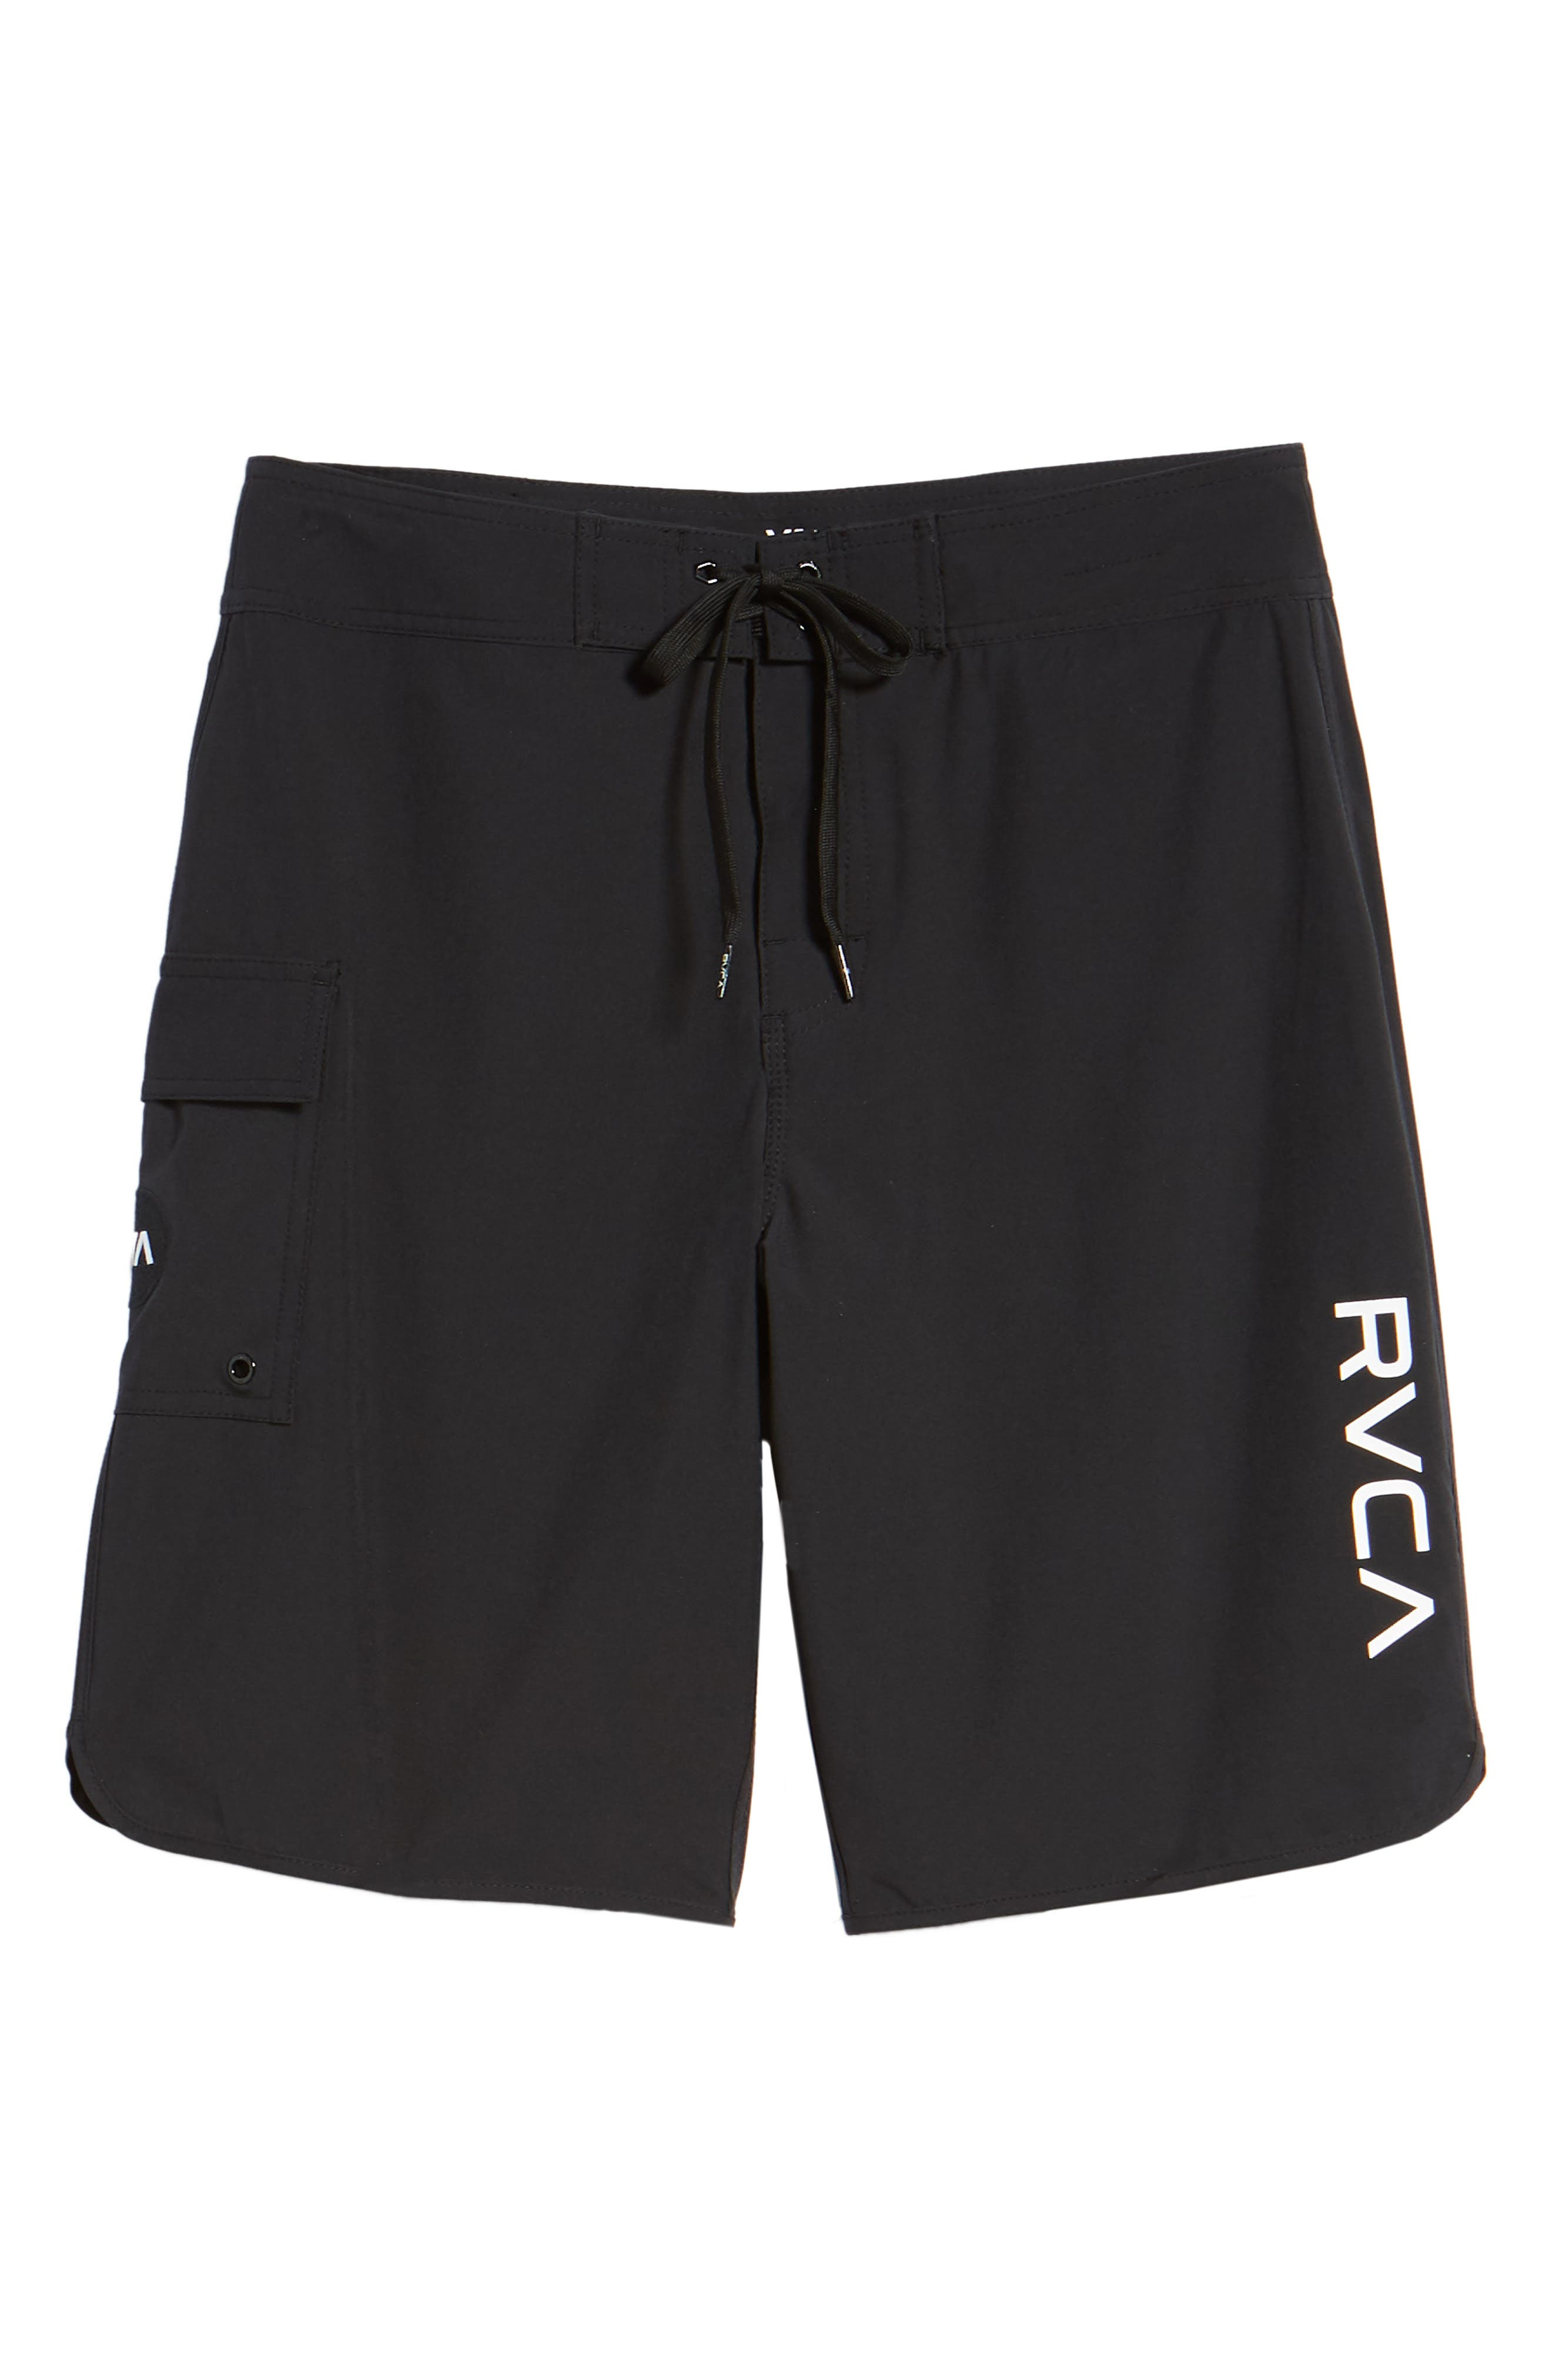 'Eastern' Scalloped Hem Board Shorts,                             Alternate thumbnail 6, color,                             ALL BLACK